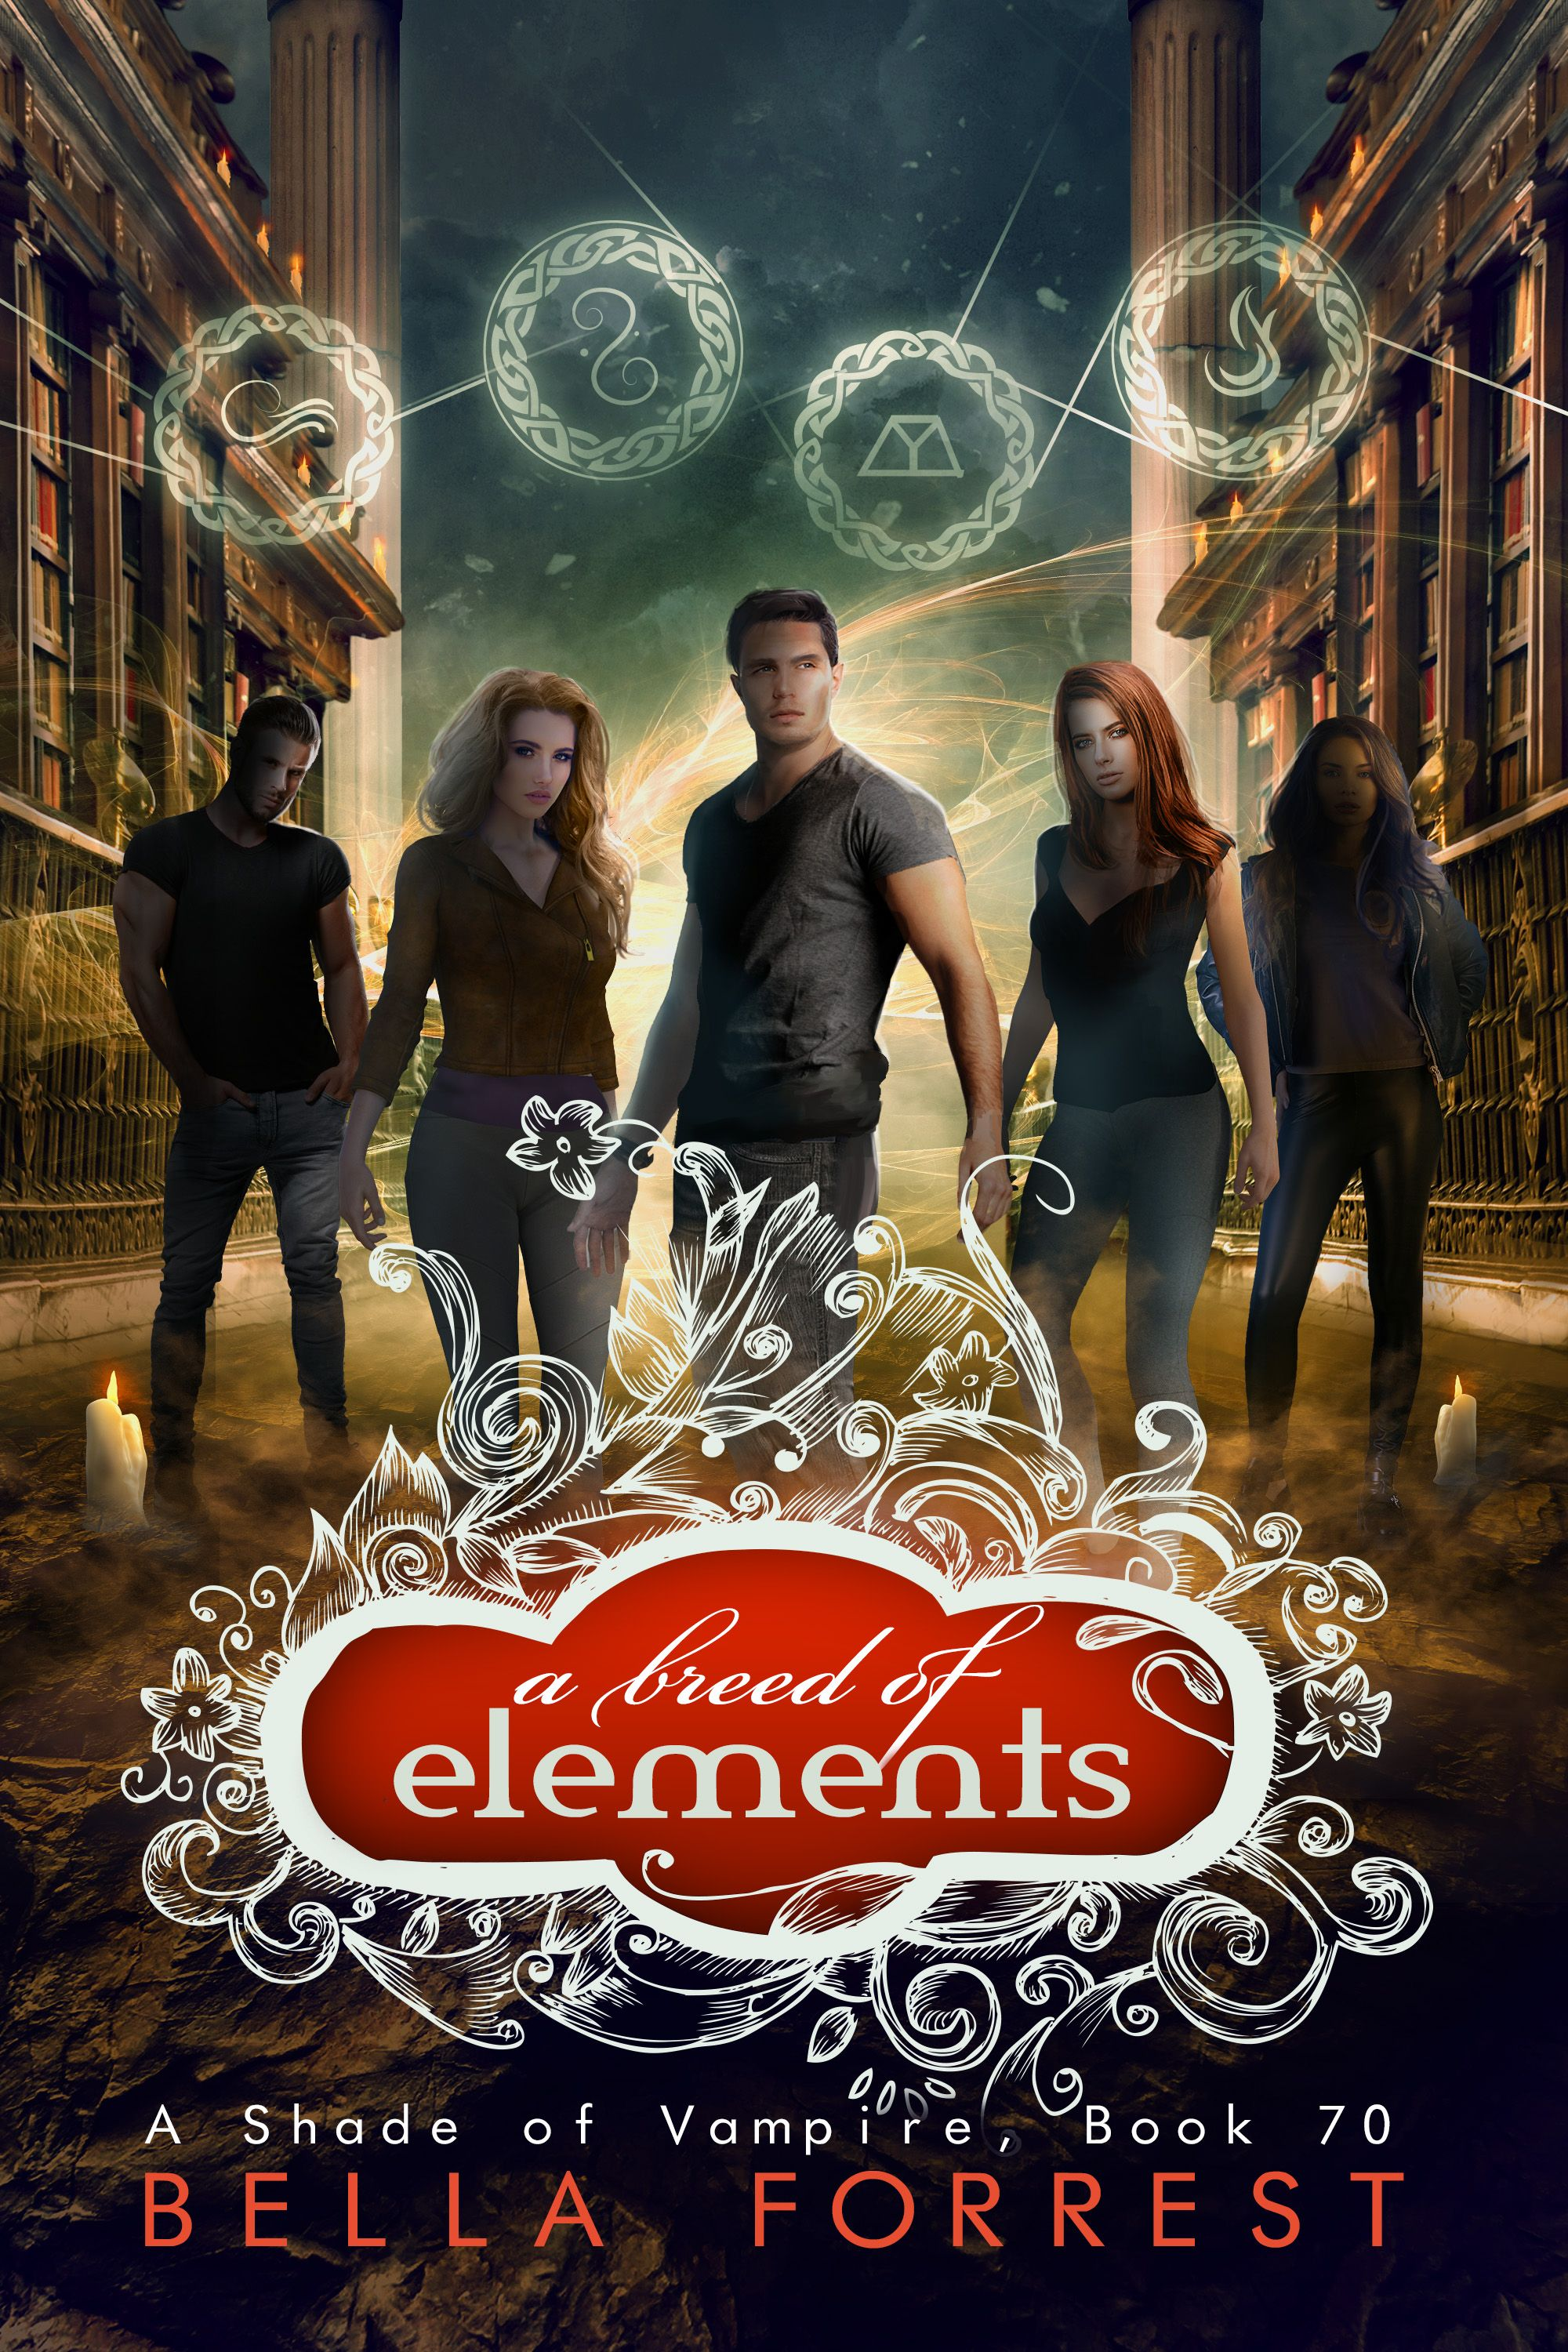 A Shade of Vampire 70: A Breed of Elements Ebook - viewbook